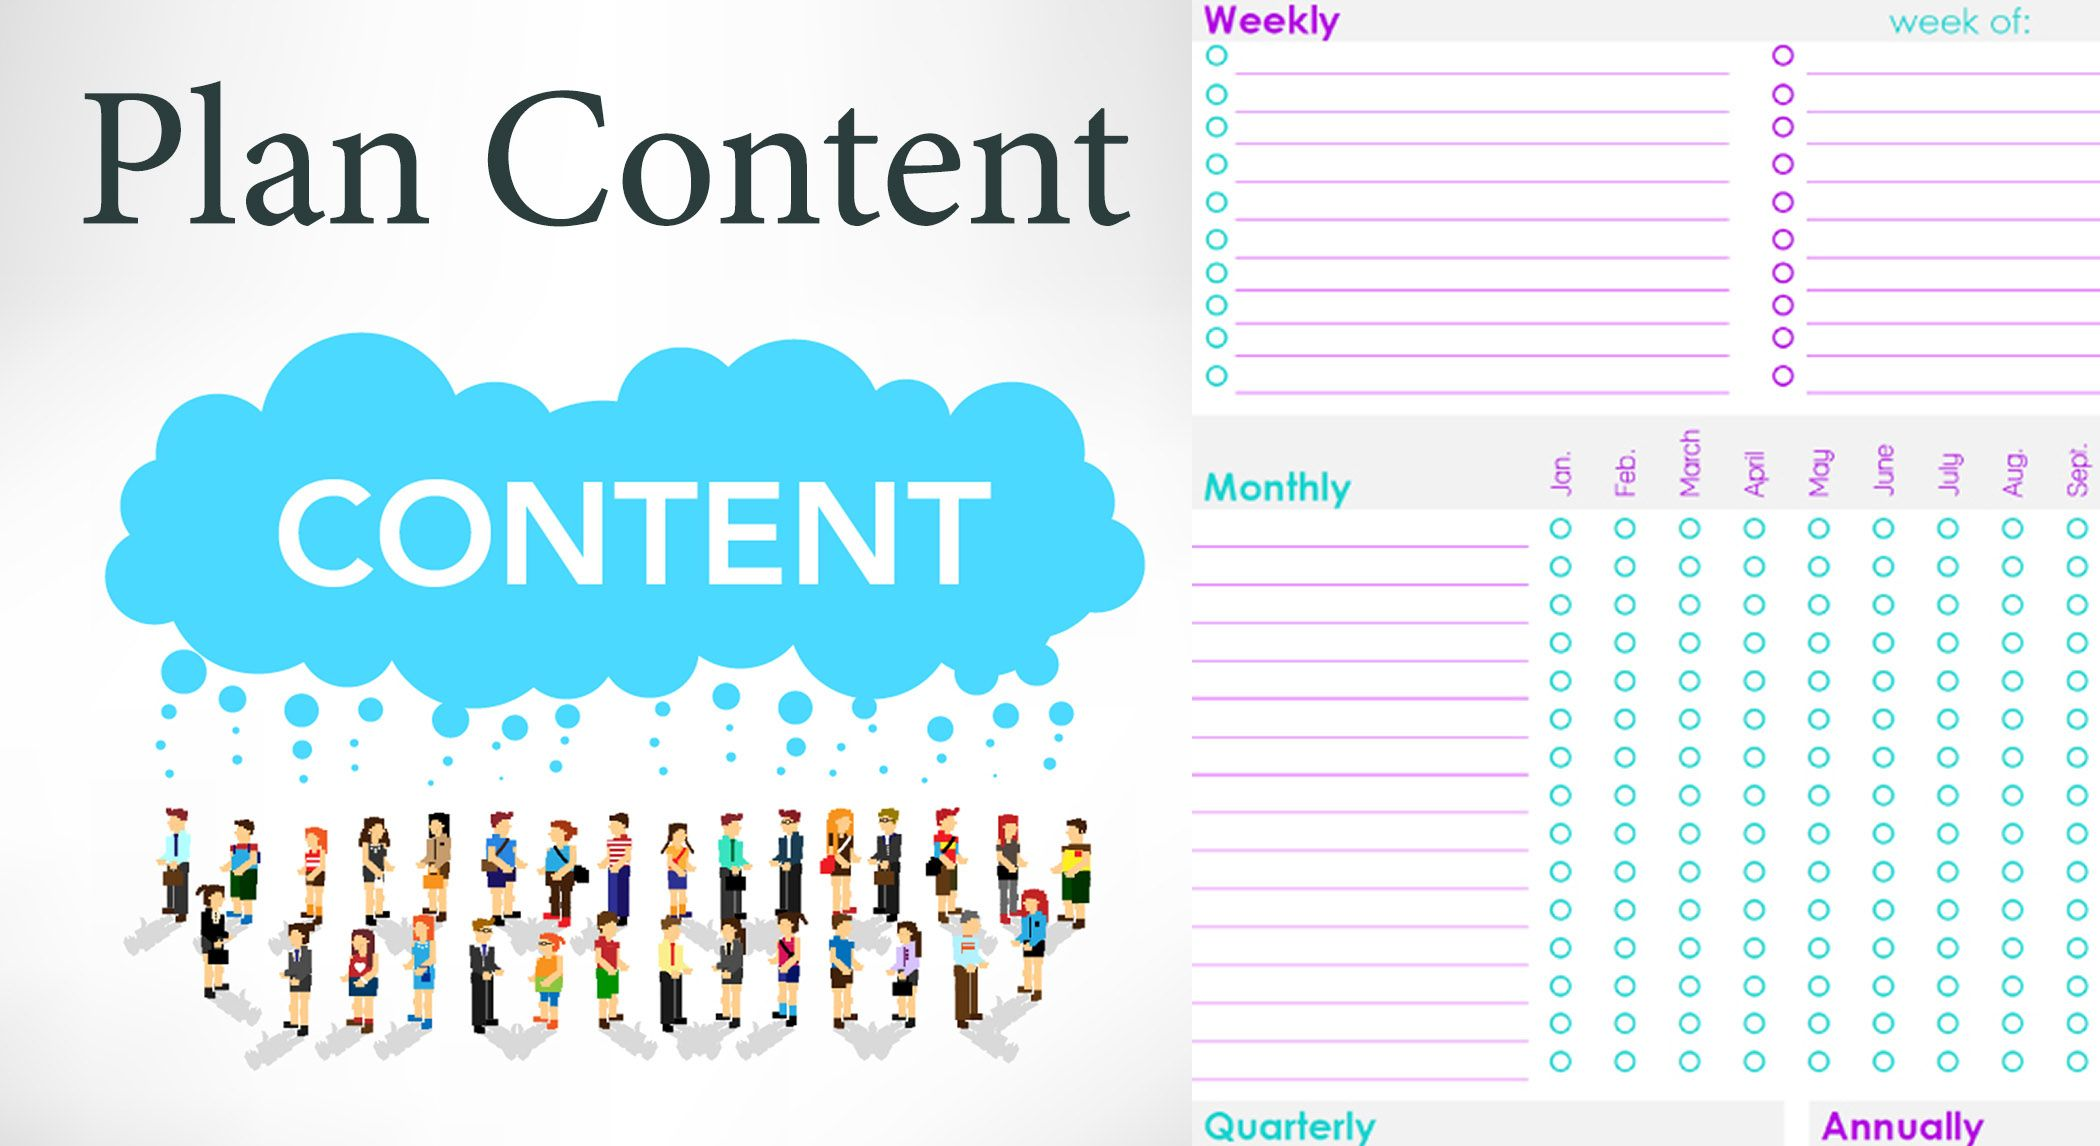 Planning content for marketing